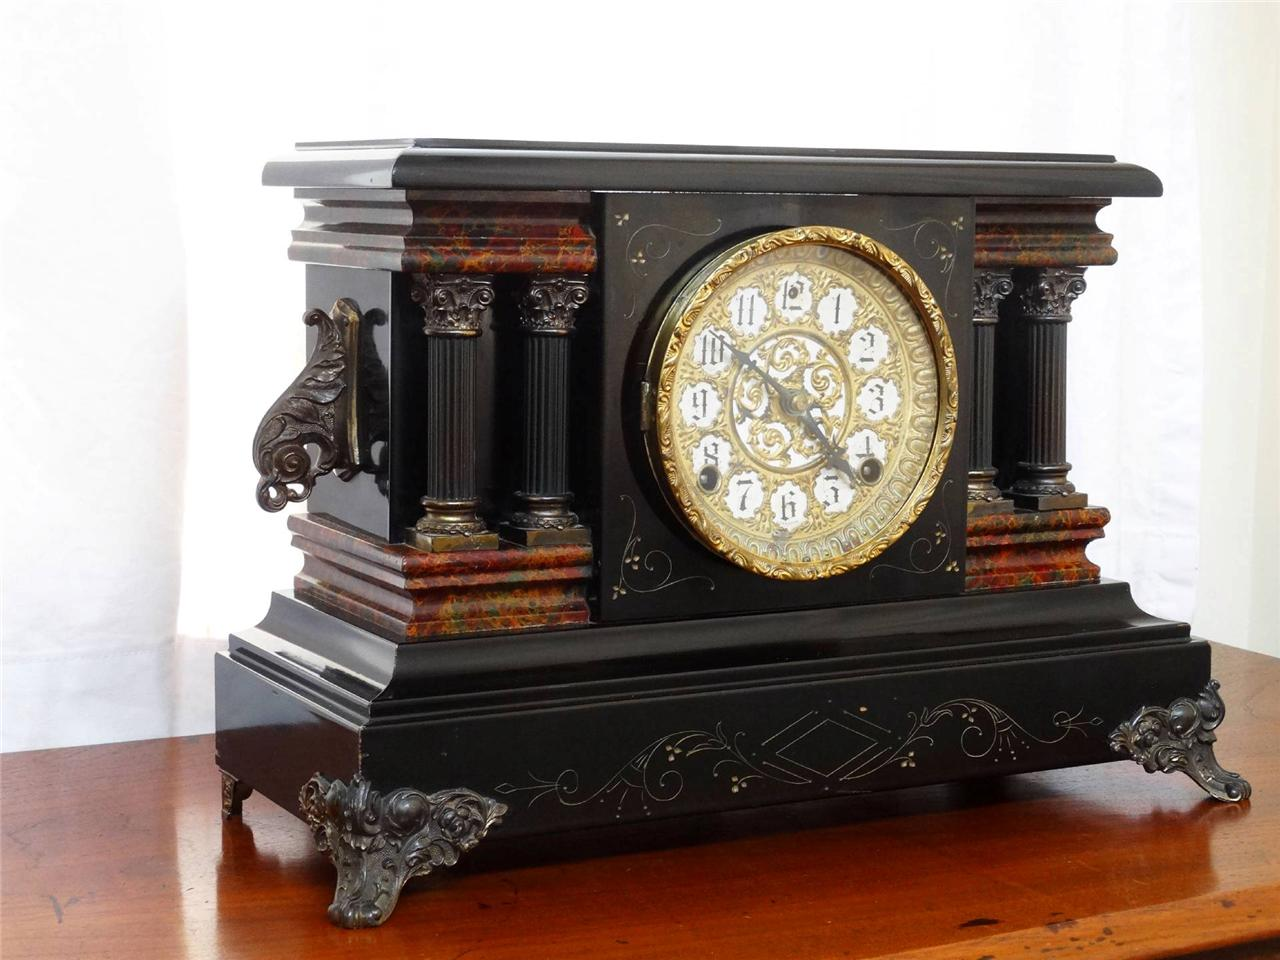 Superb-Antique-Sessions-Mantle-Clock-Adamantine-Fancy-Dial-Xlnt-Condition